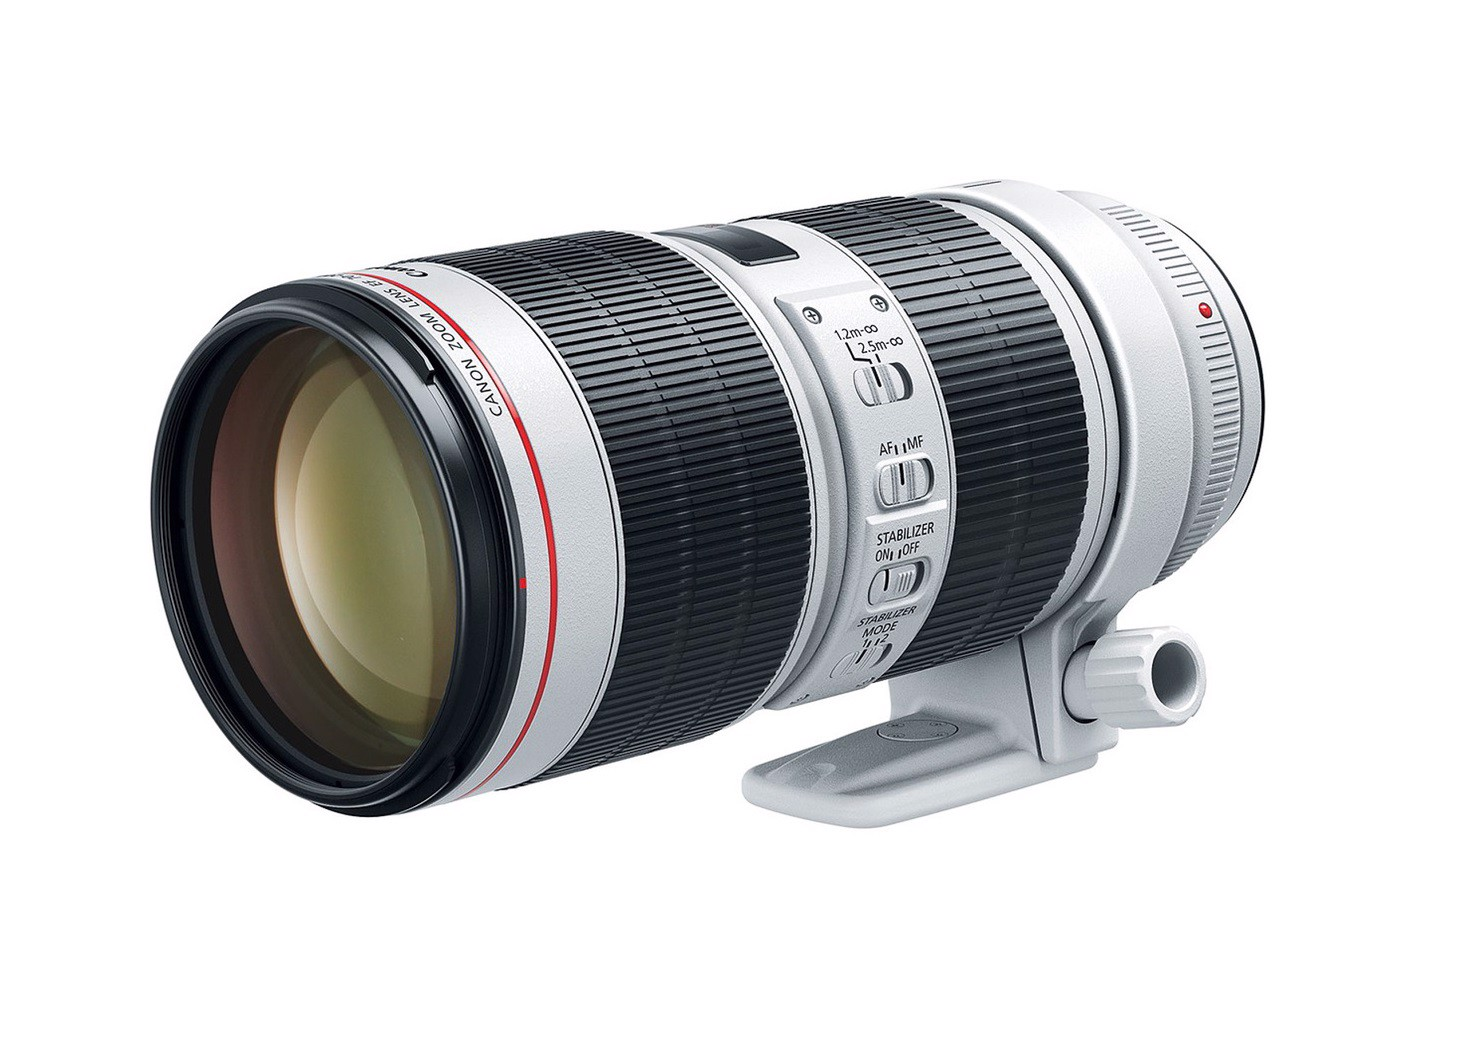 Canon EF 70-200mm F2.8 L IS III